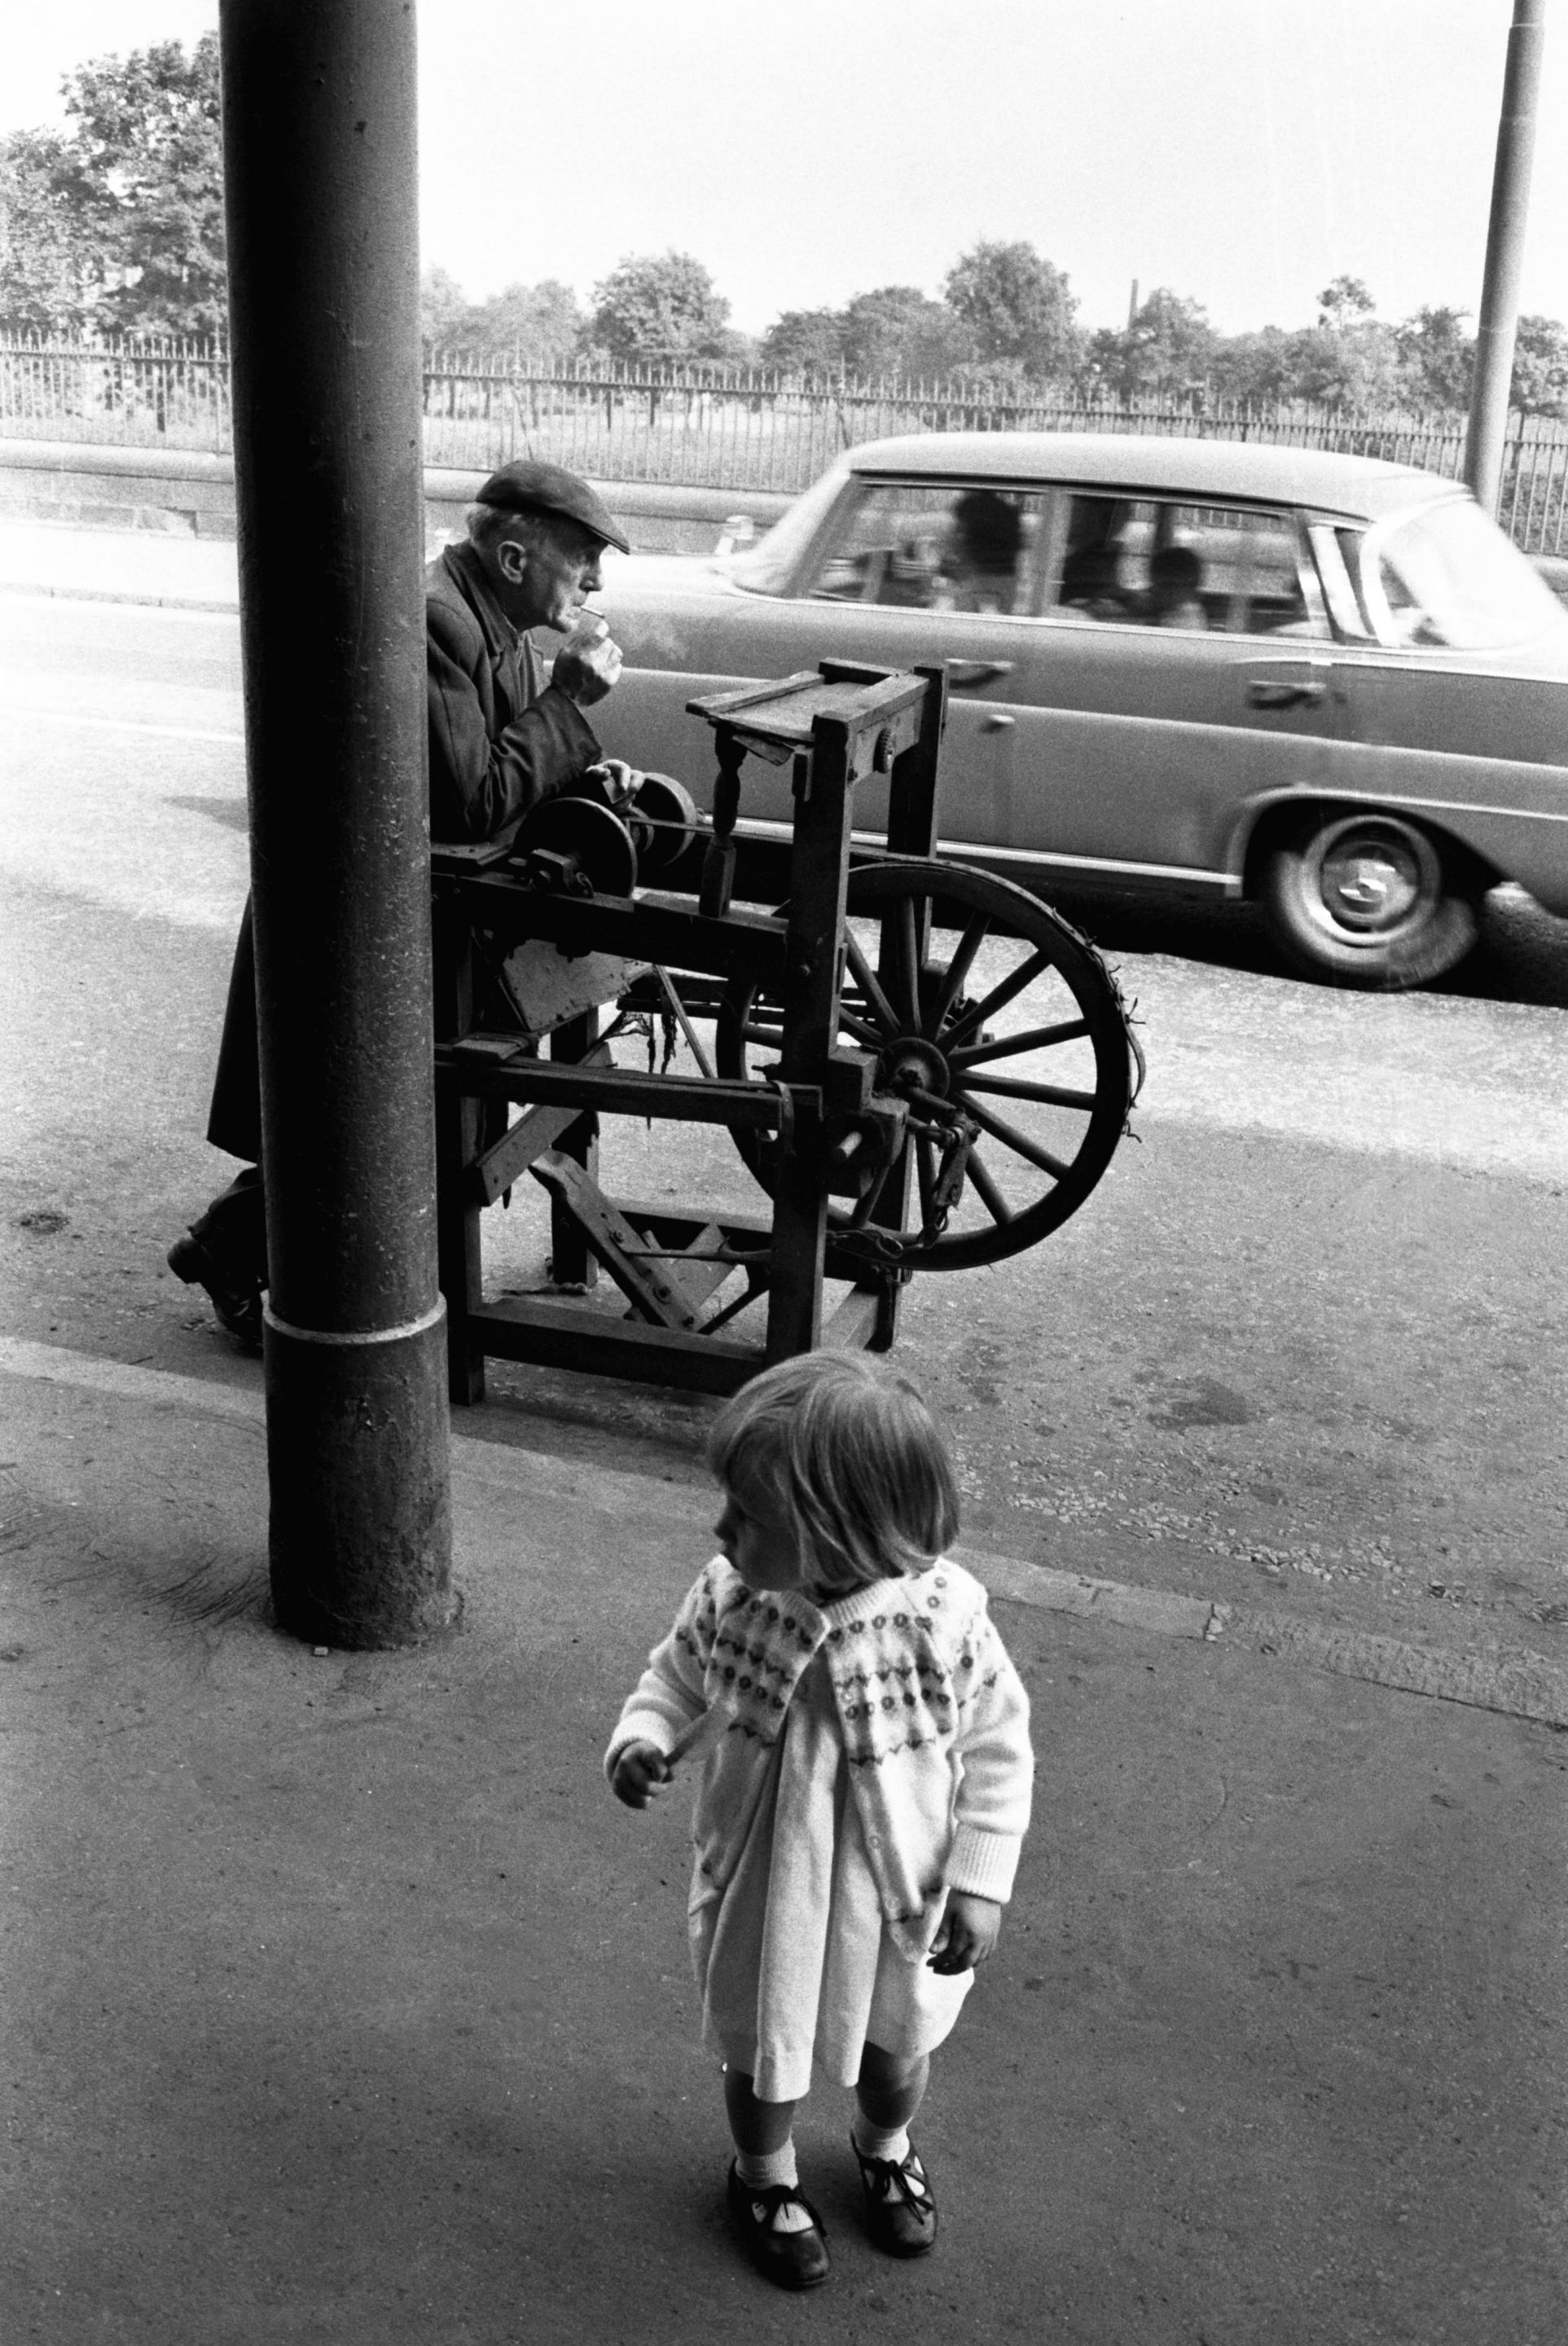 Knife Sharpener having a smoke break, Gorbals, Glasgow, 1968<br/>